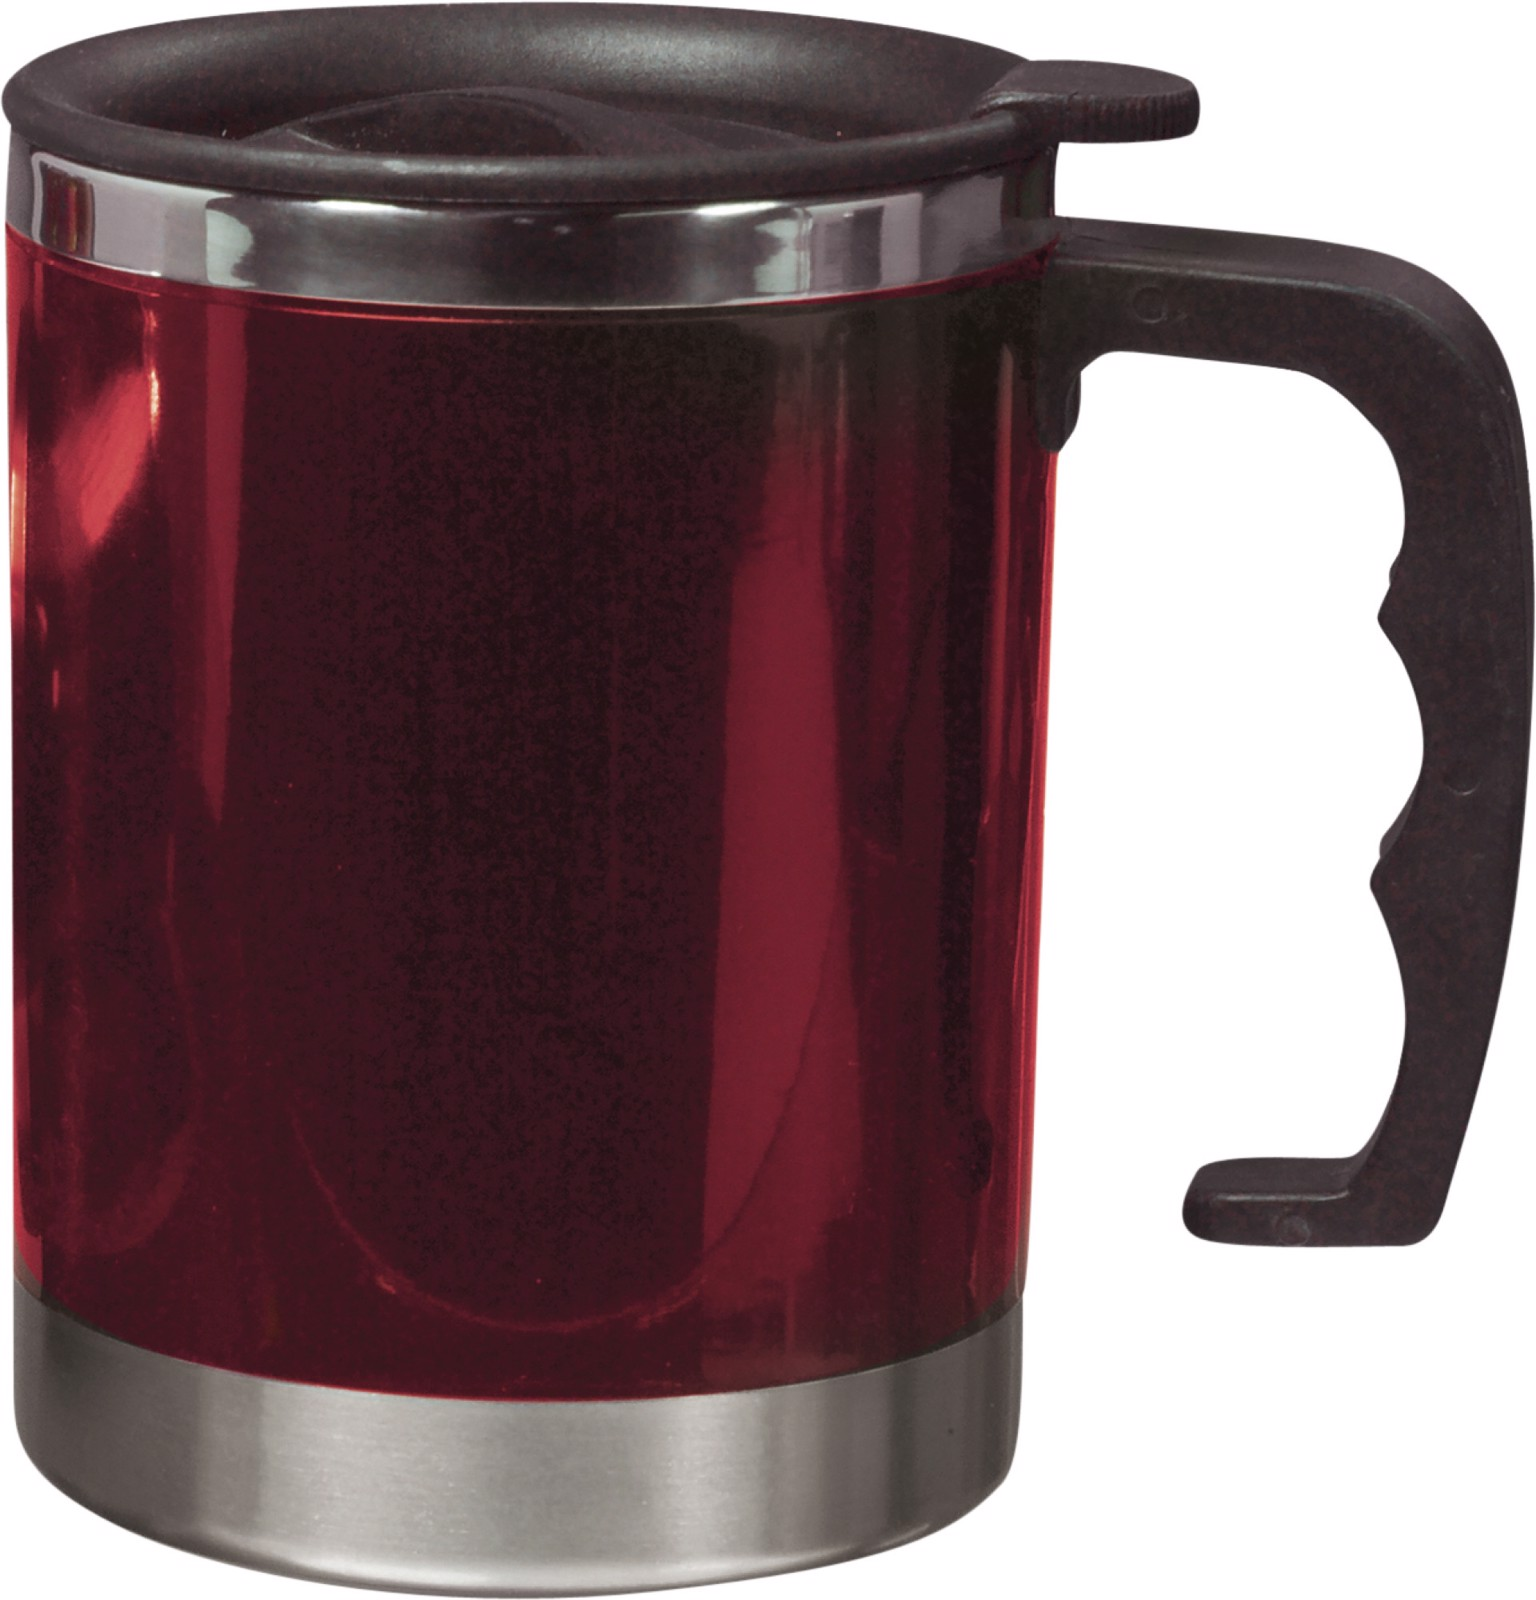 Stainless steel and AS double walled mug - Red